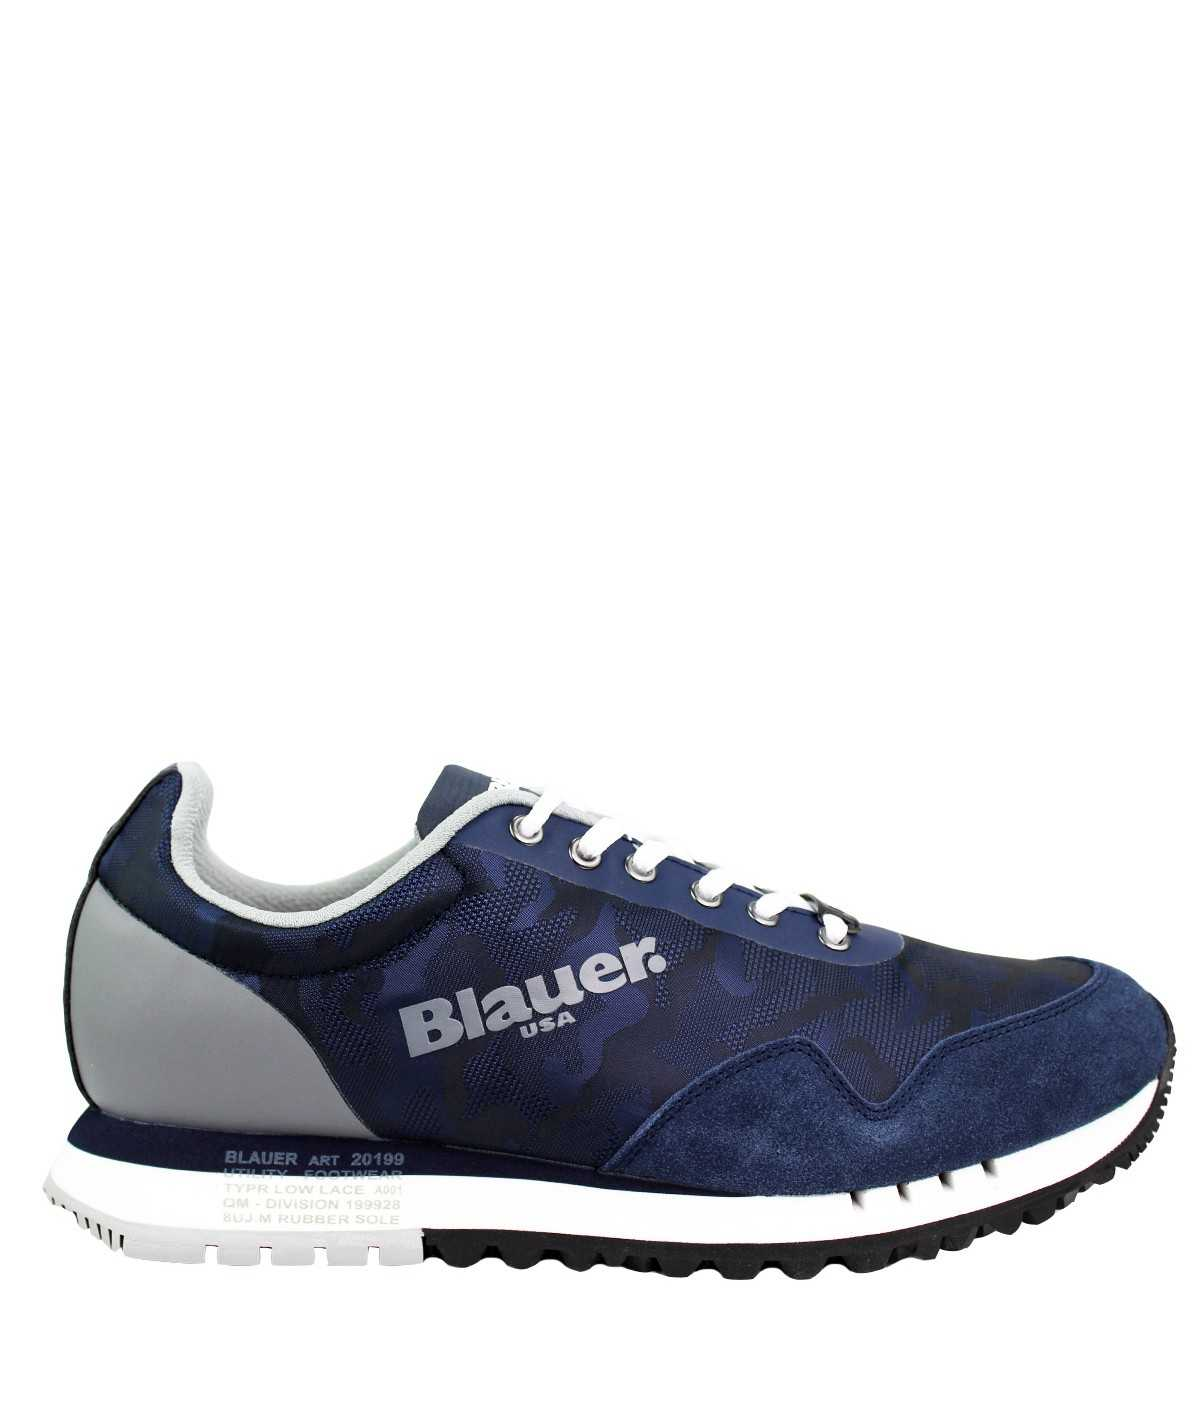 BLAUER Sneakers Uomo